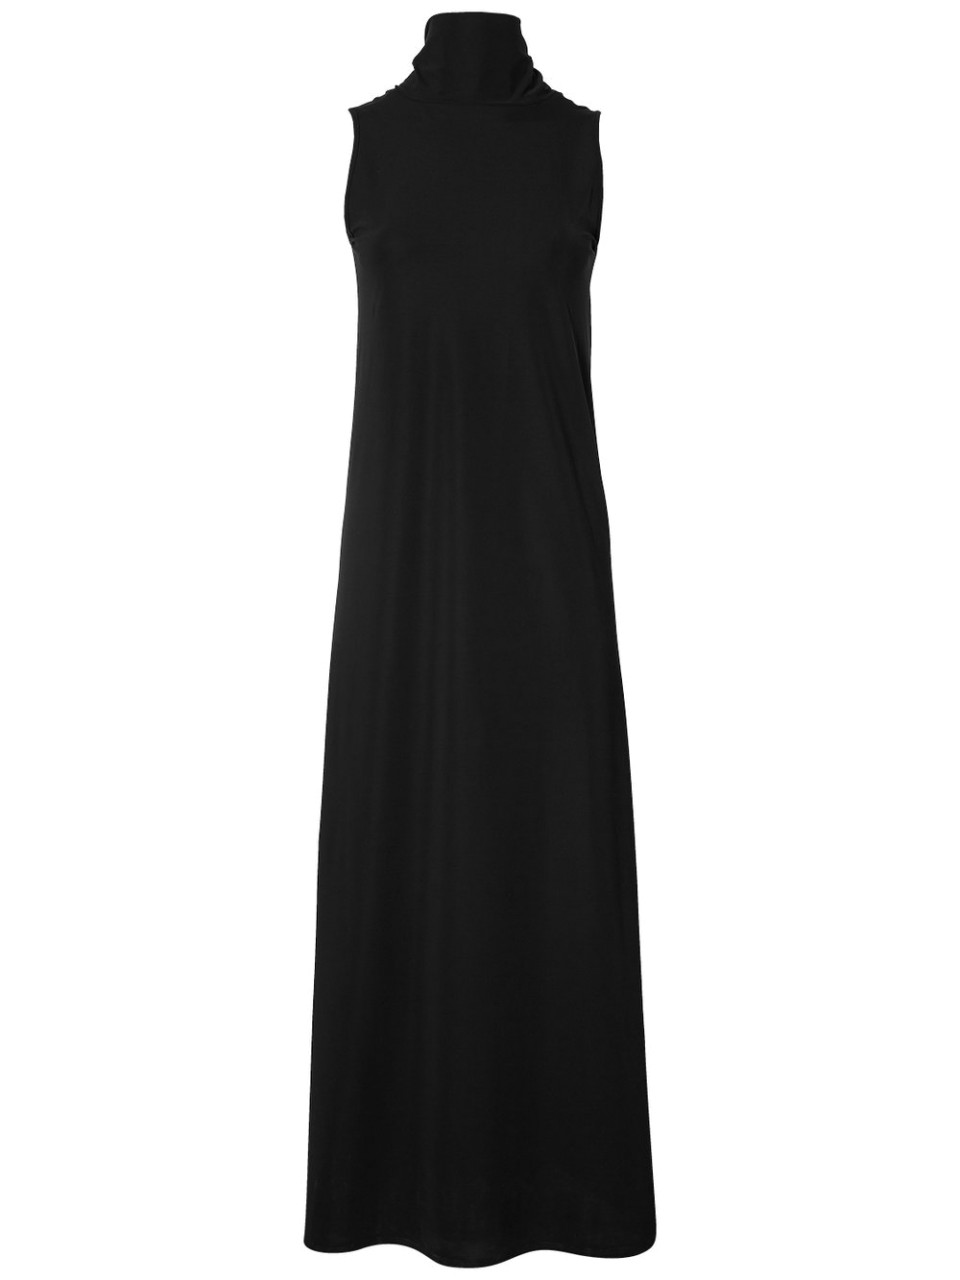 Penn & Ink NY - Dress - 652 - black